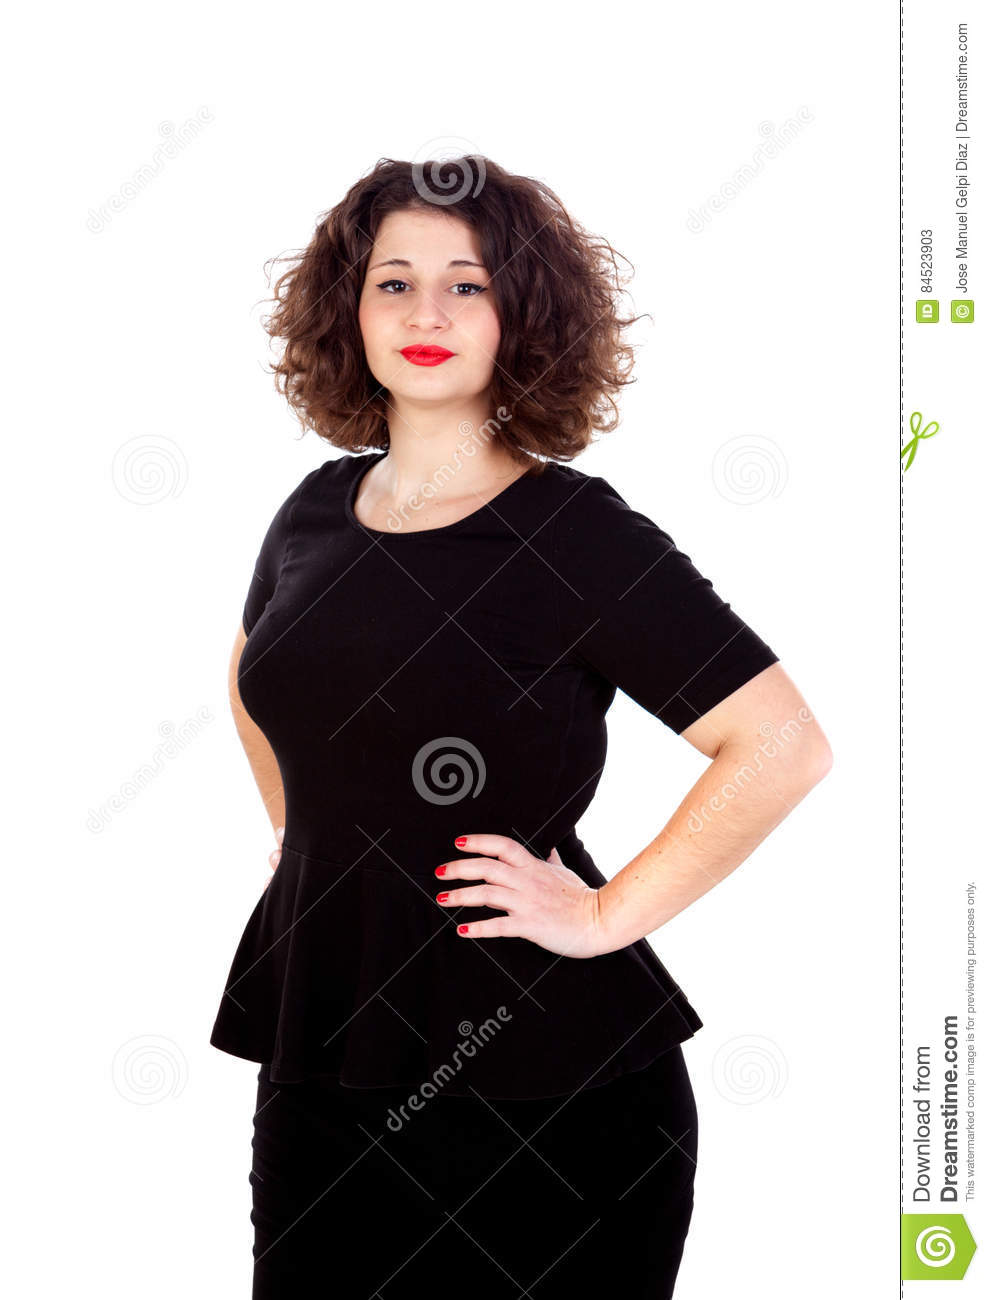 Beautiful Curvy Girl With Black Dress And Red Lips Stock Image